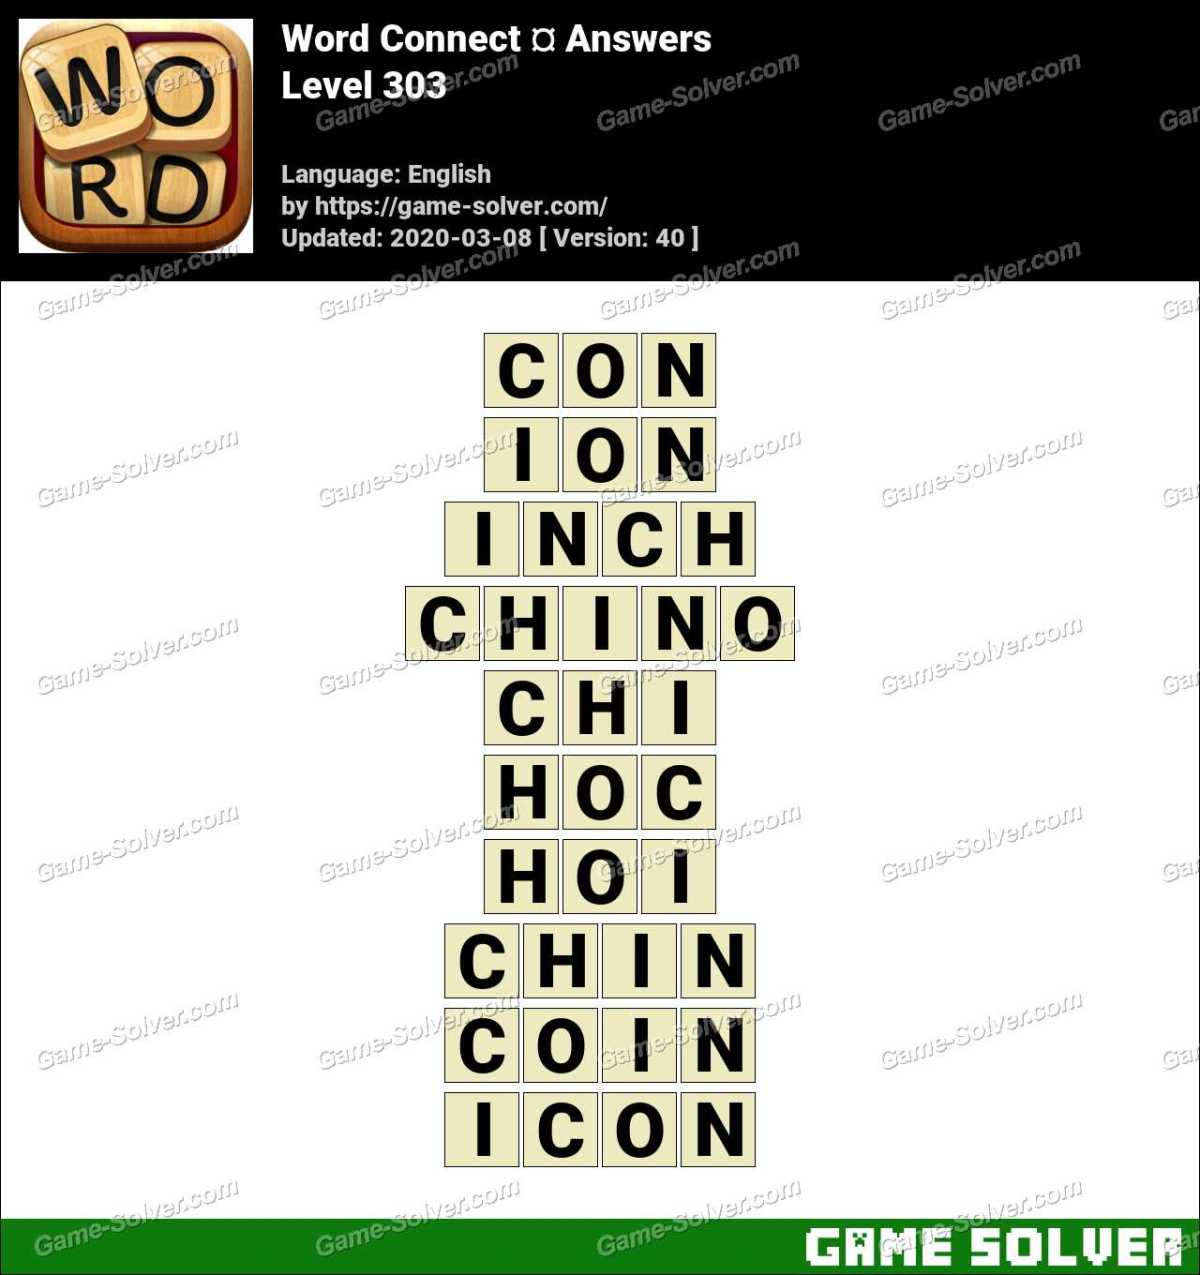 Word Connect Level 303 Answers